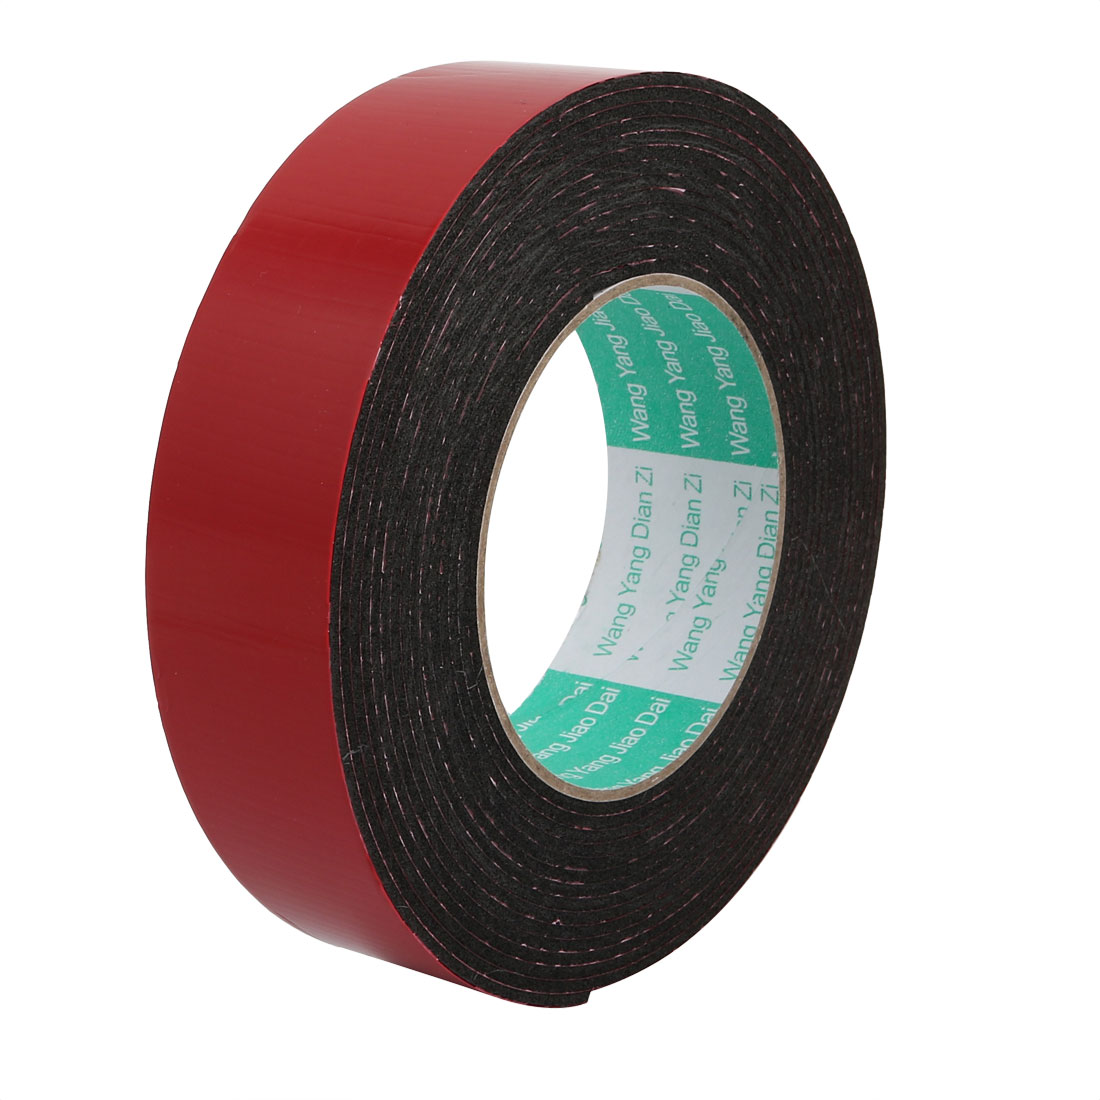 Unique Bargains 35mm Width 2mm Thickness Double-side Sealed Sponge Tape Black 16.4ft Length